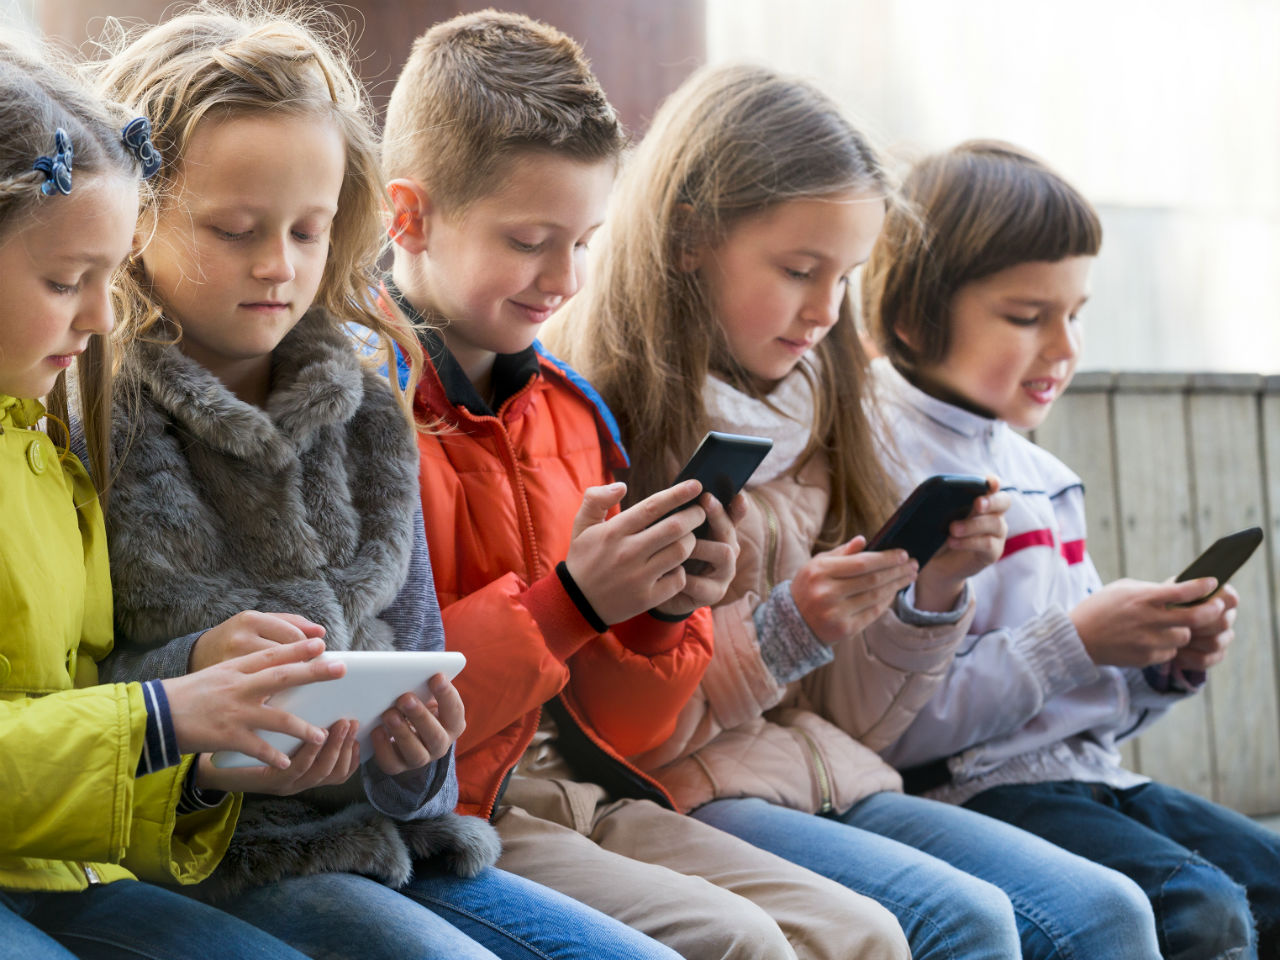 A group of kids on smartphones and iPad